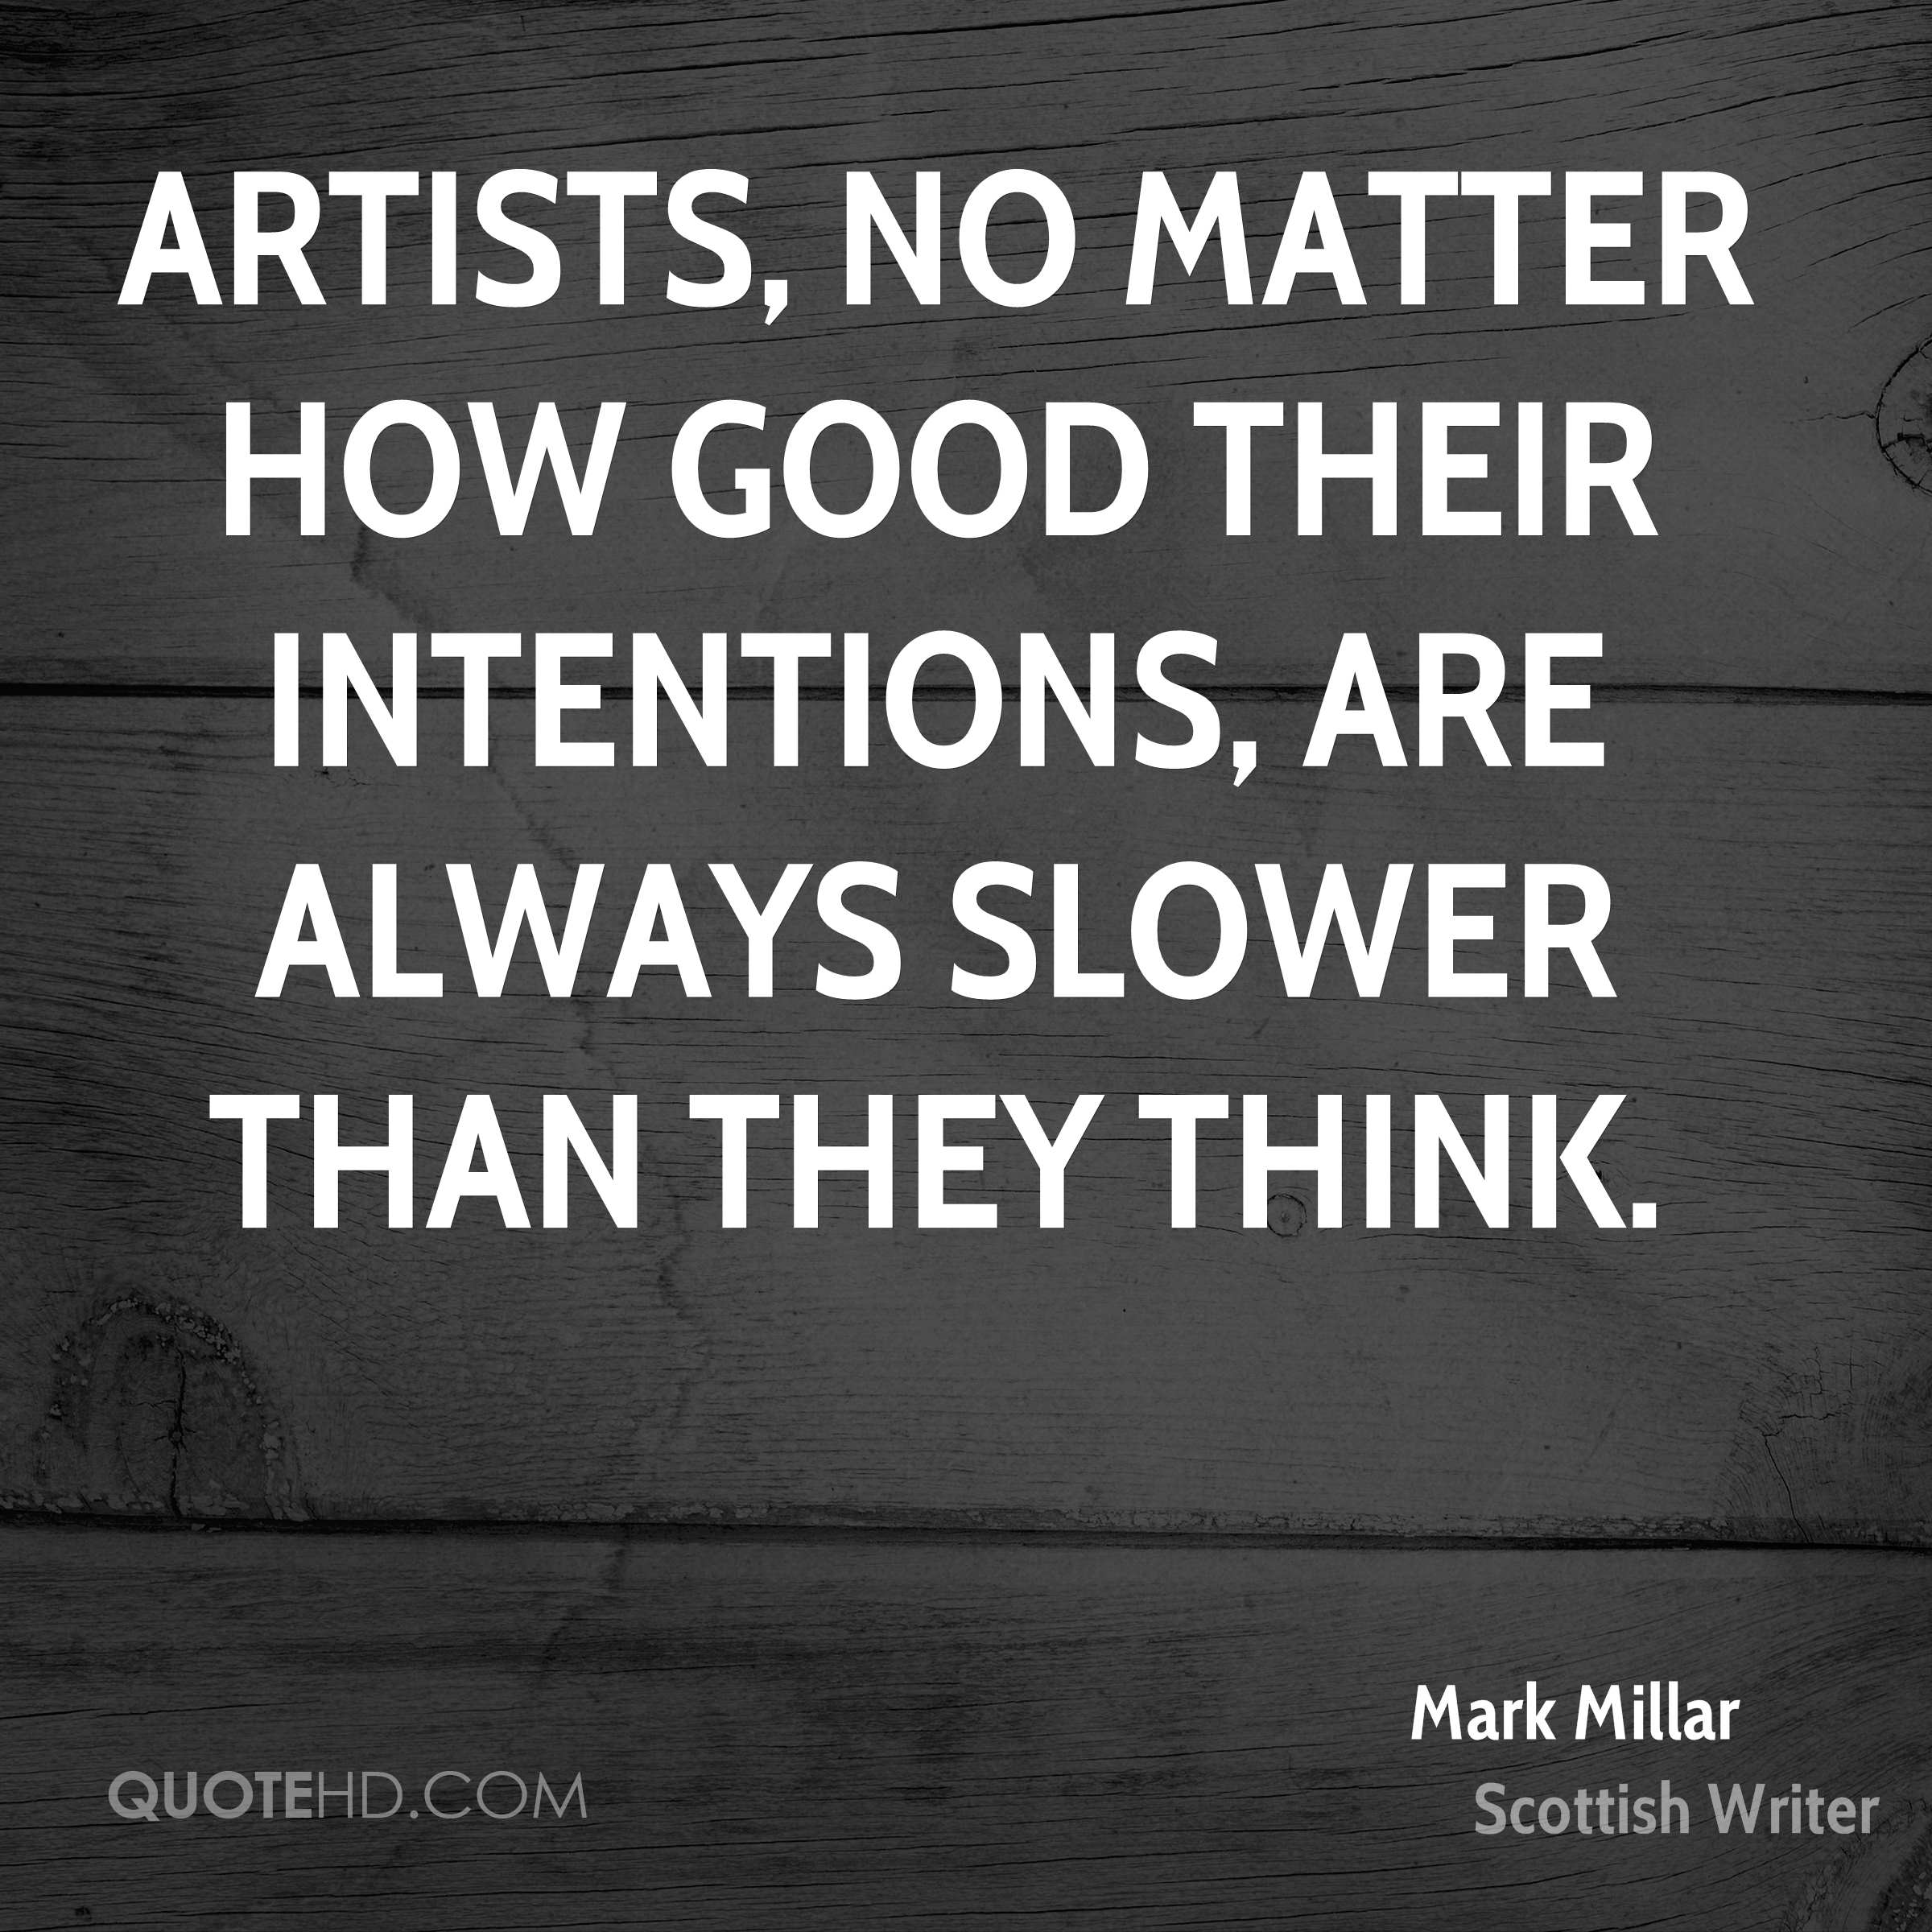 Artists, no matter how good their intentions, are always slower than they think.